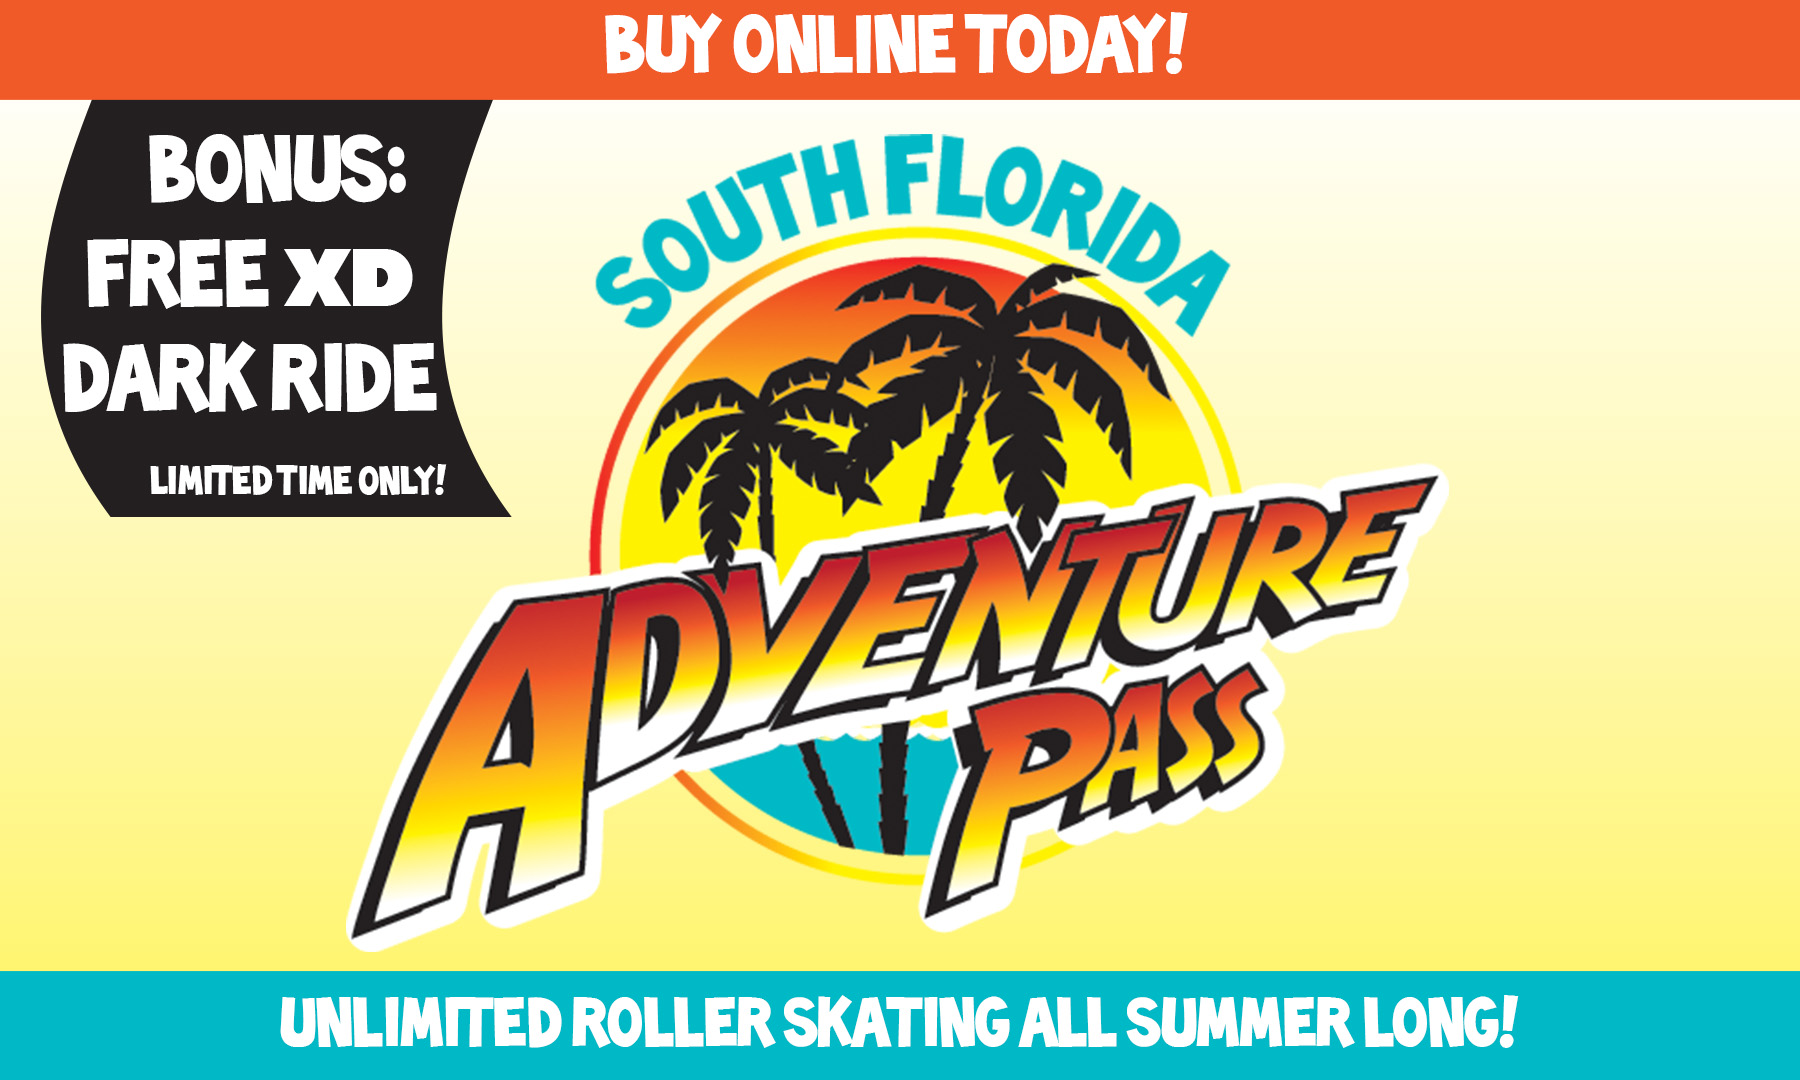 Unlimited Roller Skating all Summer with South Florida Adventure Pass